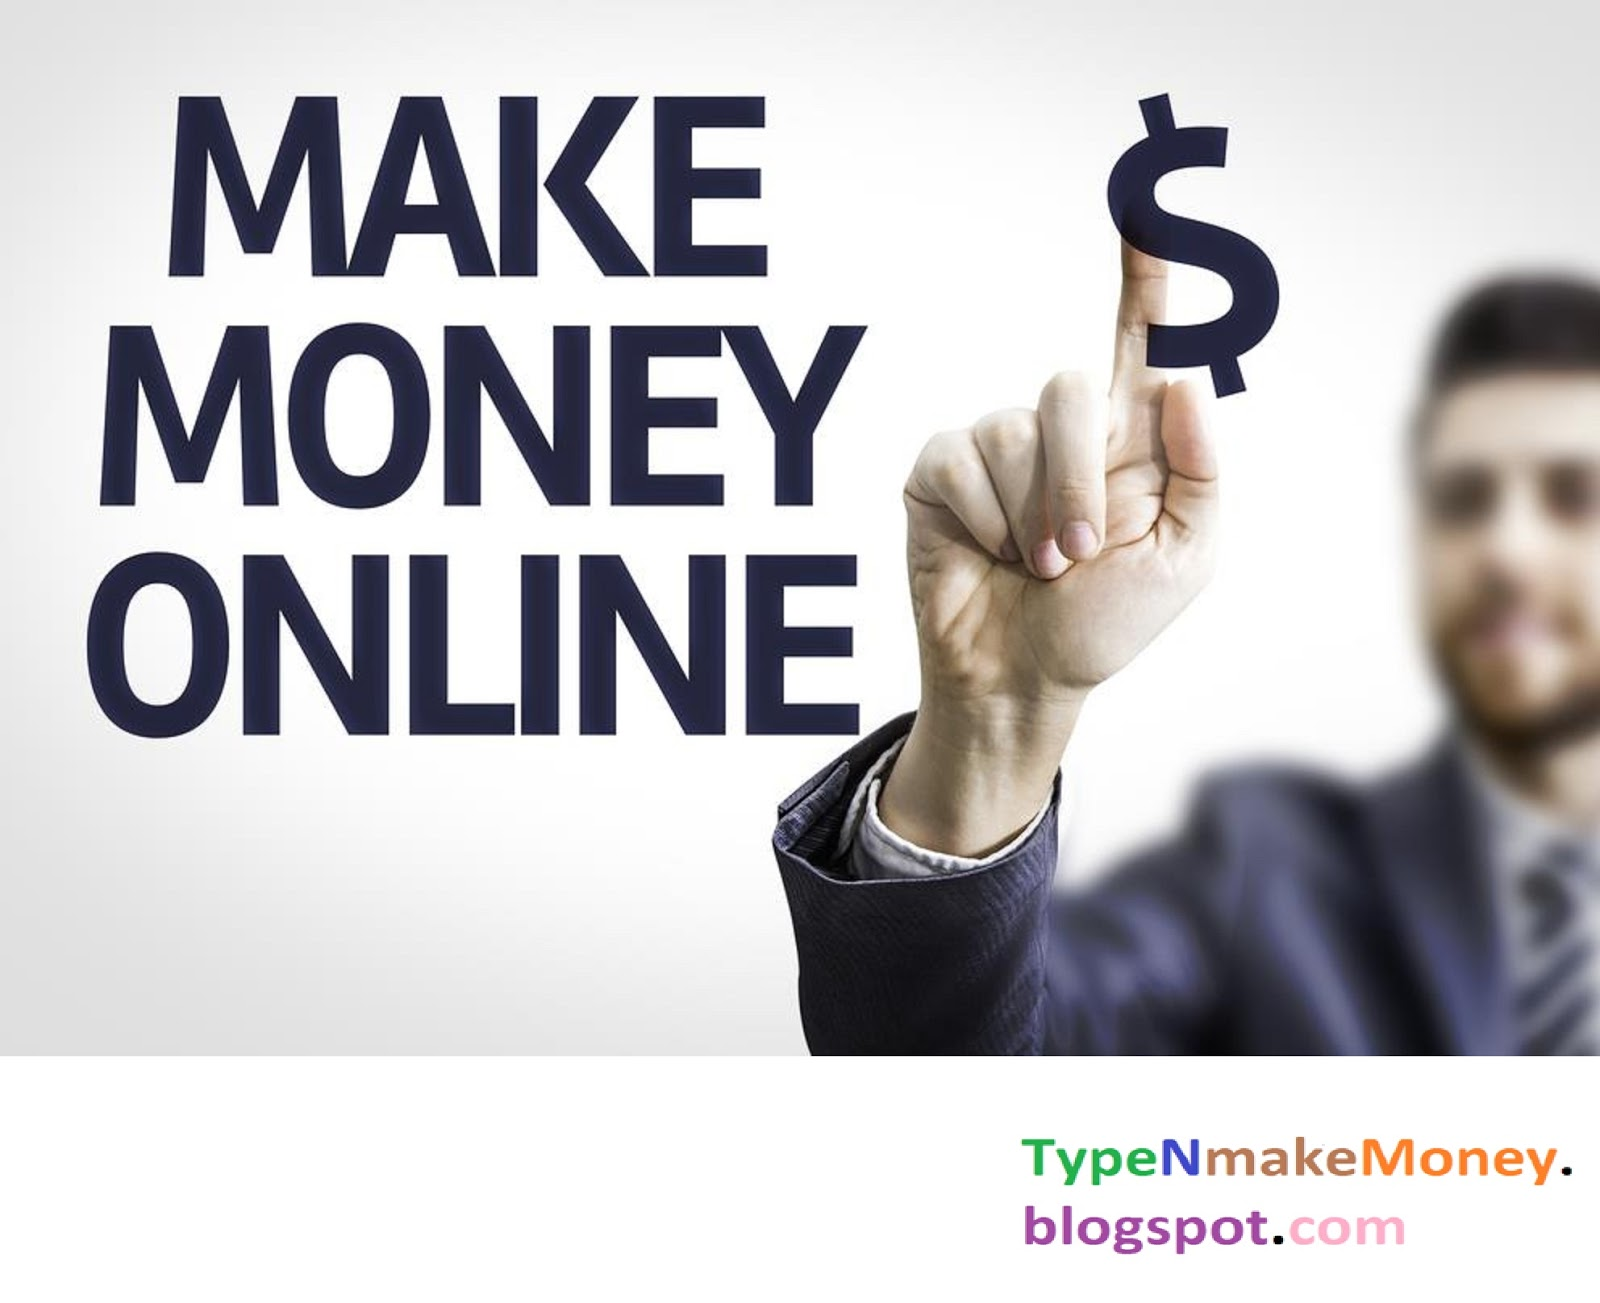 earnonlinemoney you can easily make money online online you can easily make money online online writing jobs